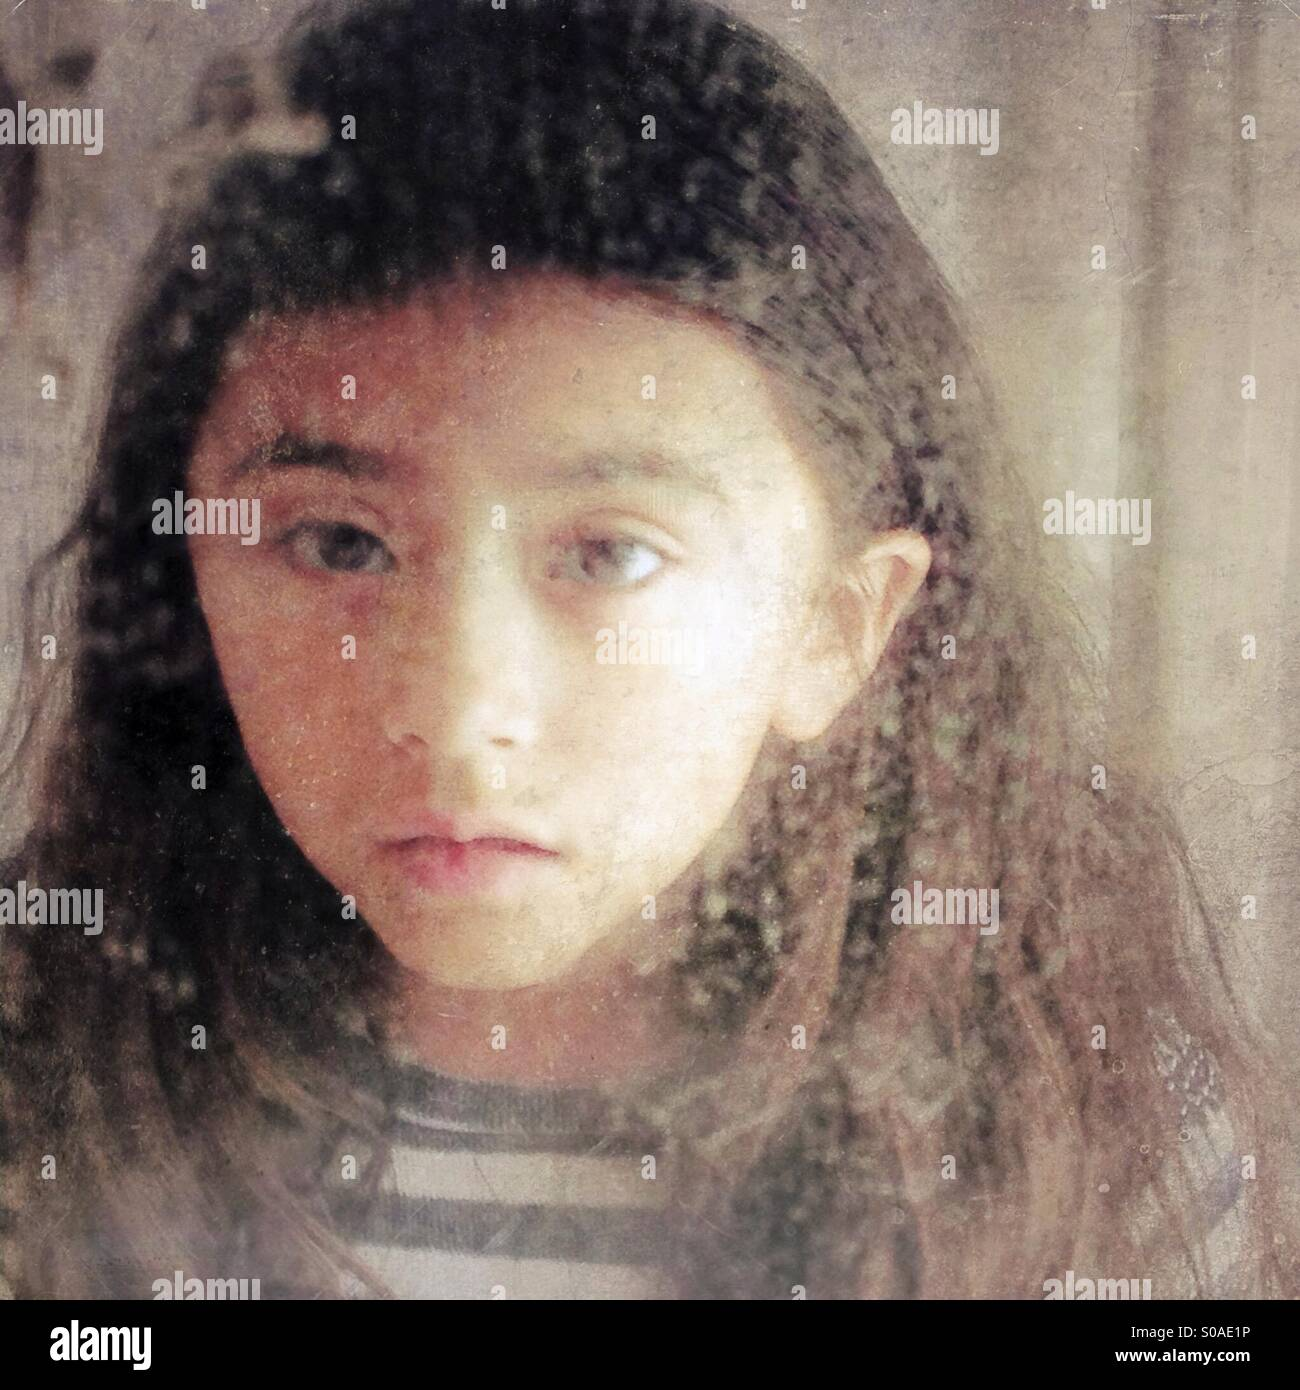 The reflection of a little girl looking into an old mirror looking sad or sick. - Stock Image